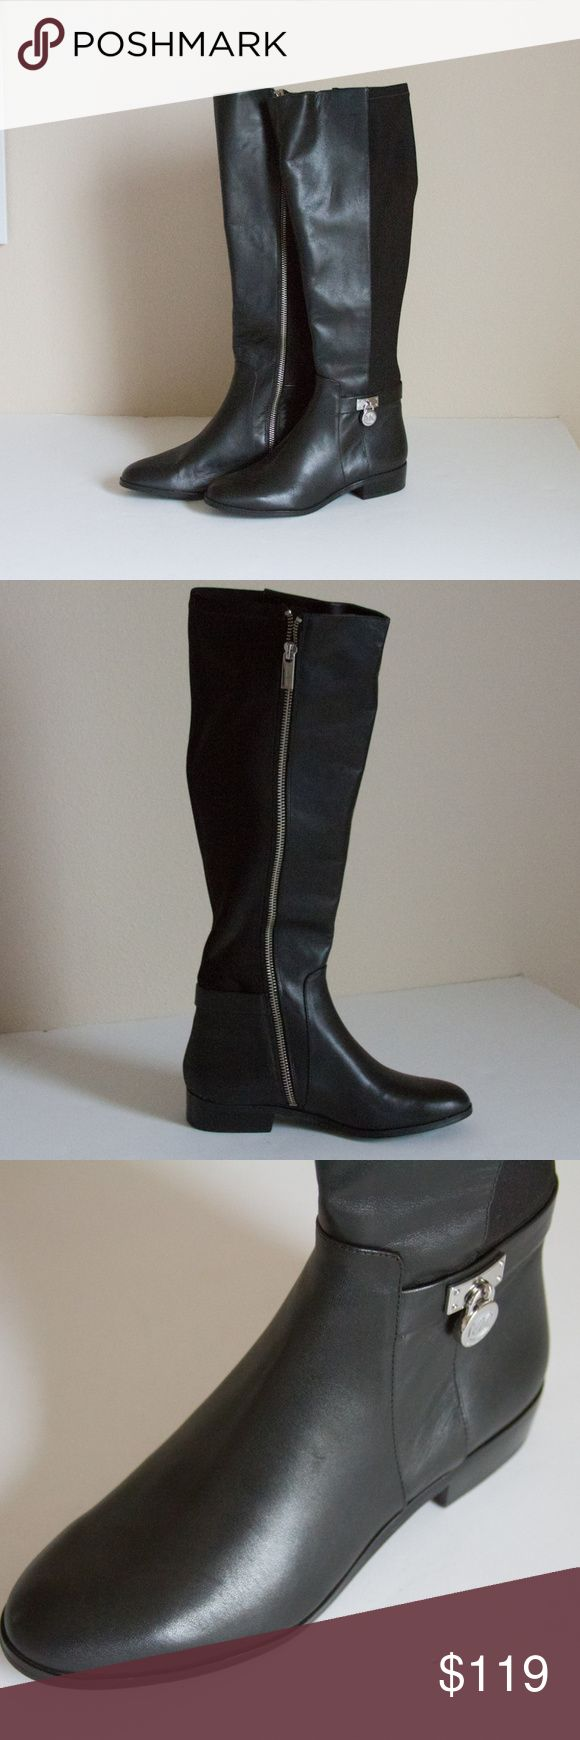 """Michael Kors Leather & Textile Riding Boots PW15E Womens Michael by Michael Kors black knee high leather boots  Style Name: PW15E  Color: Black  Size: 5M  Width: M  Material: Leather and textile upper rubber outsoles  Boot Length: 17""""  Compare at $240 Michael Kors Shoes Combat & Moto Boots"""